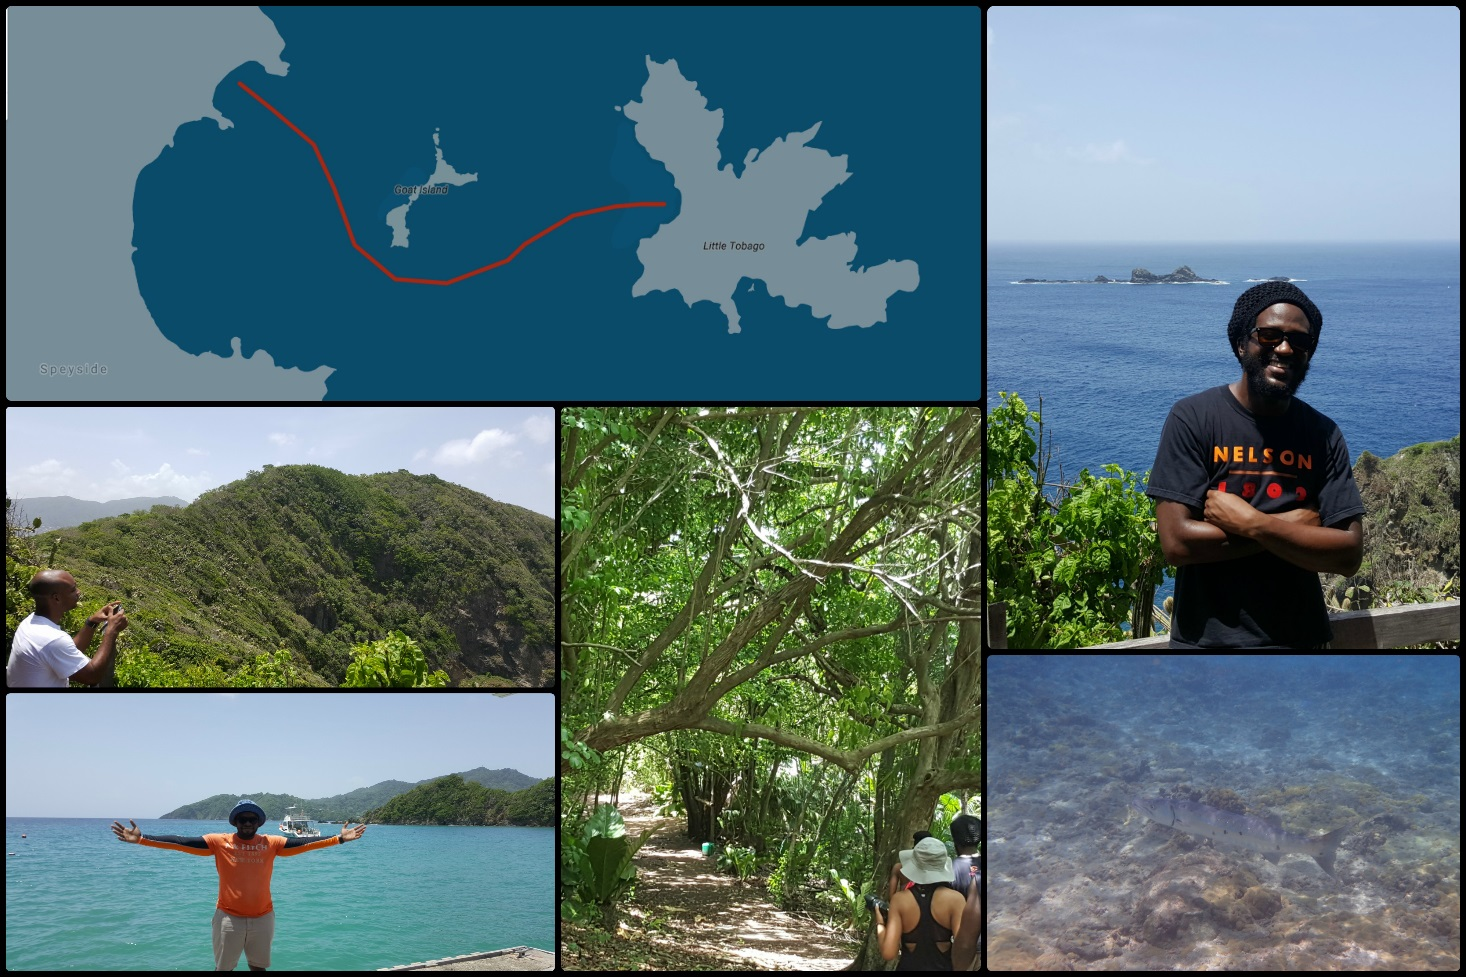 five-big-things-about-little-tobago-adventure